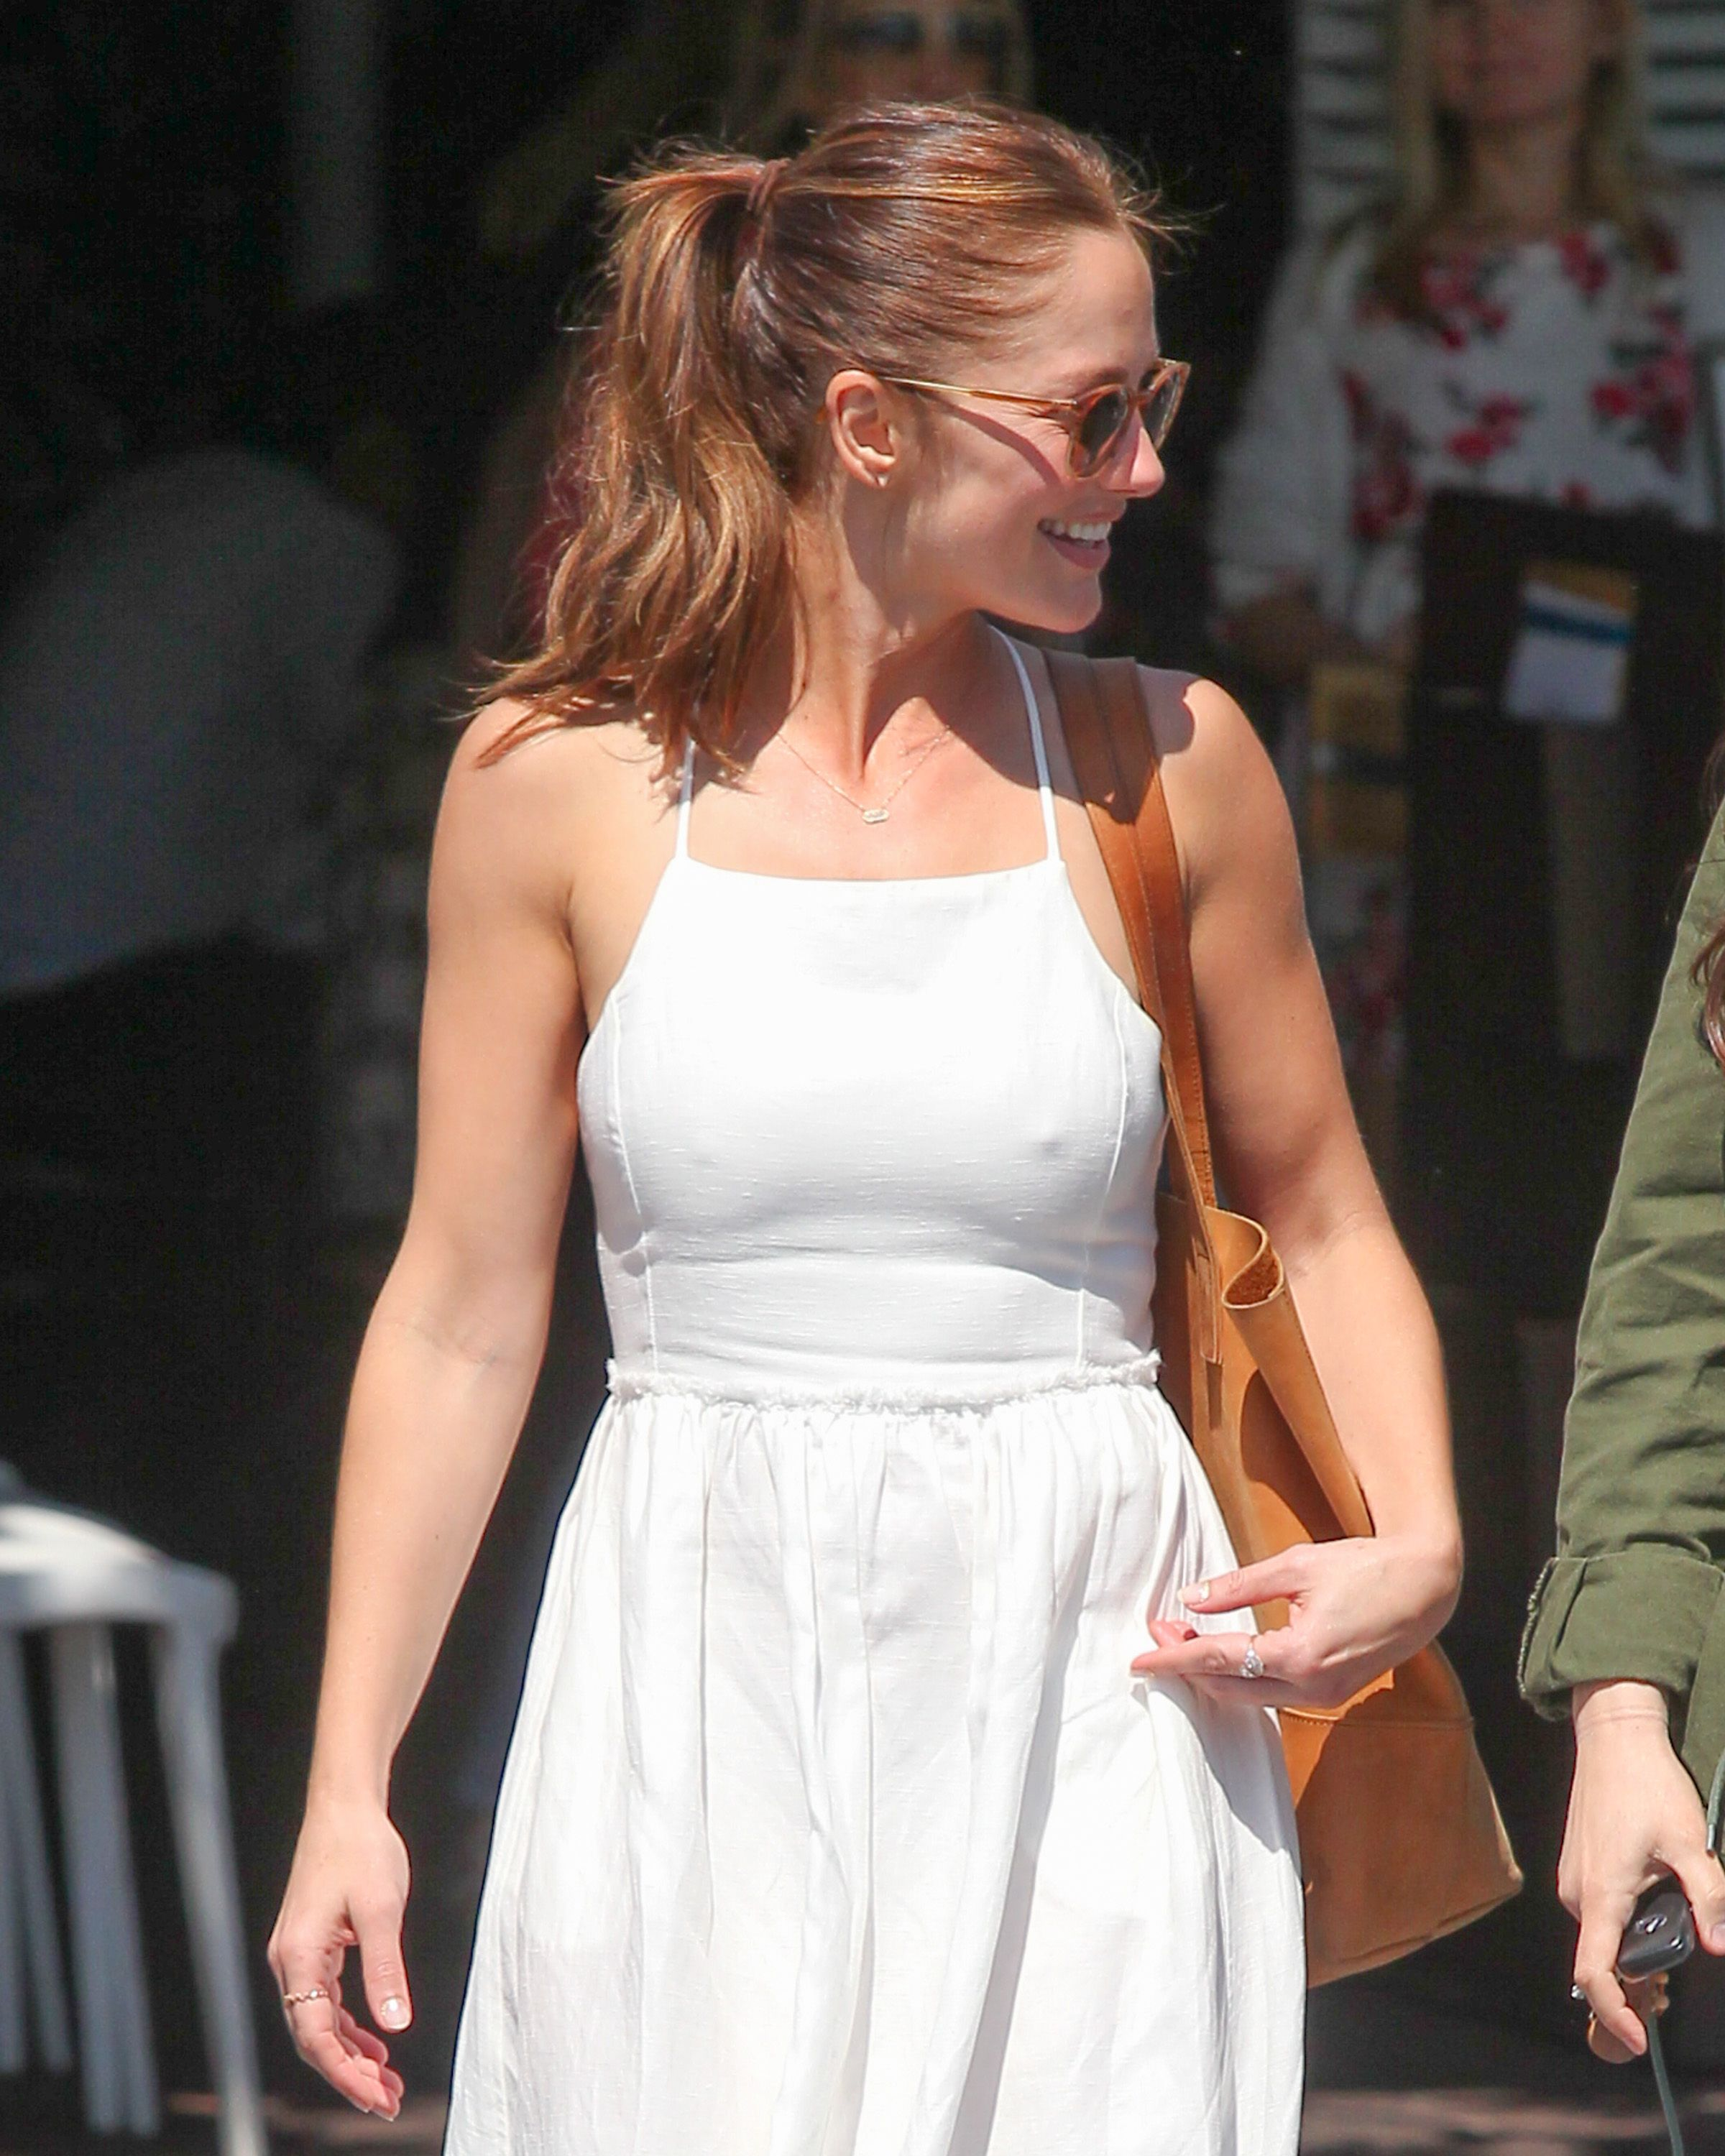 Minka Kelly Pokies Photos